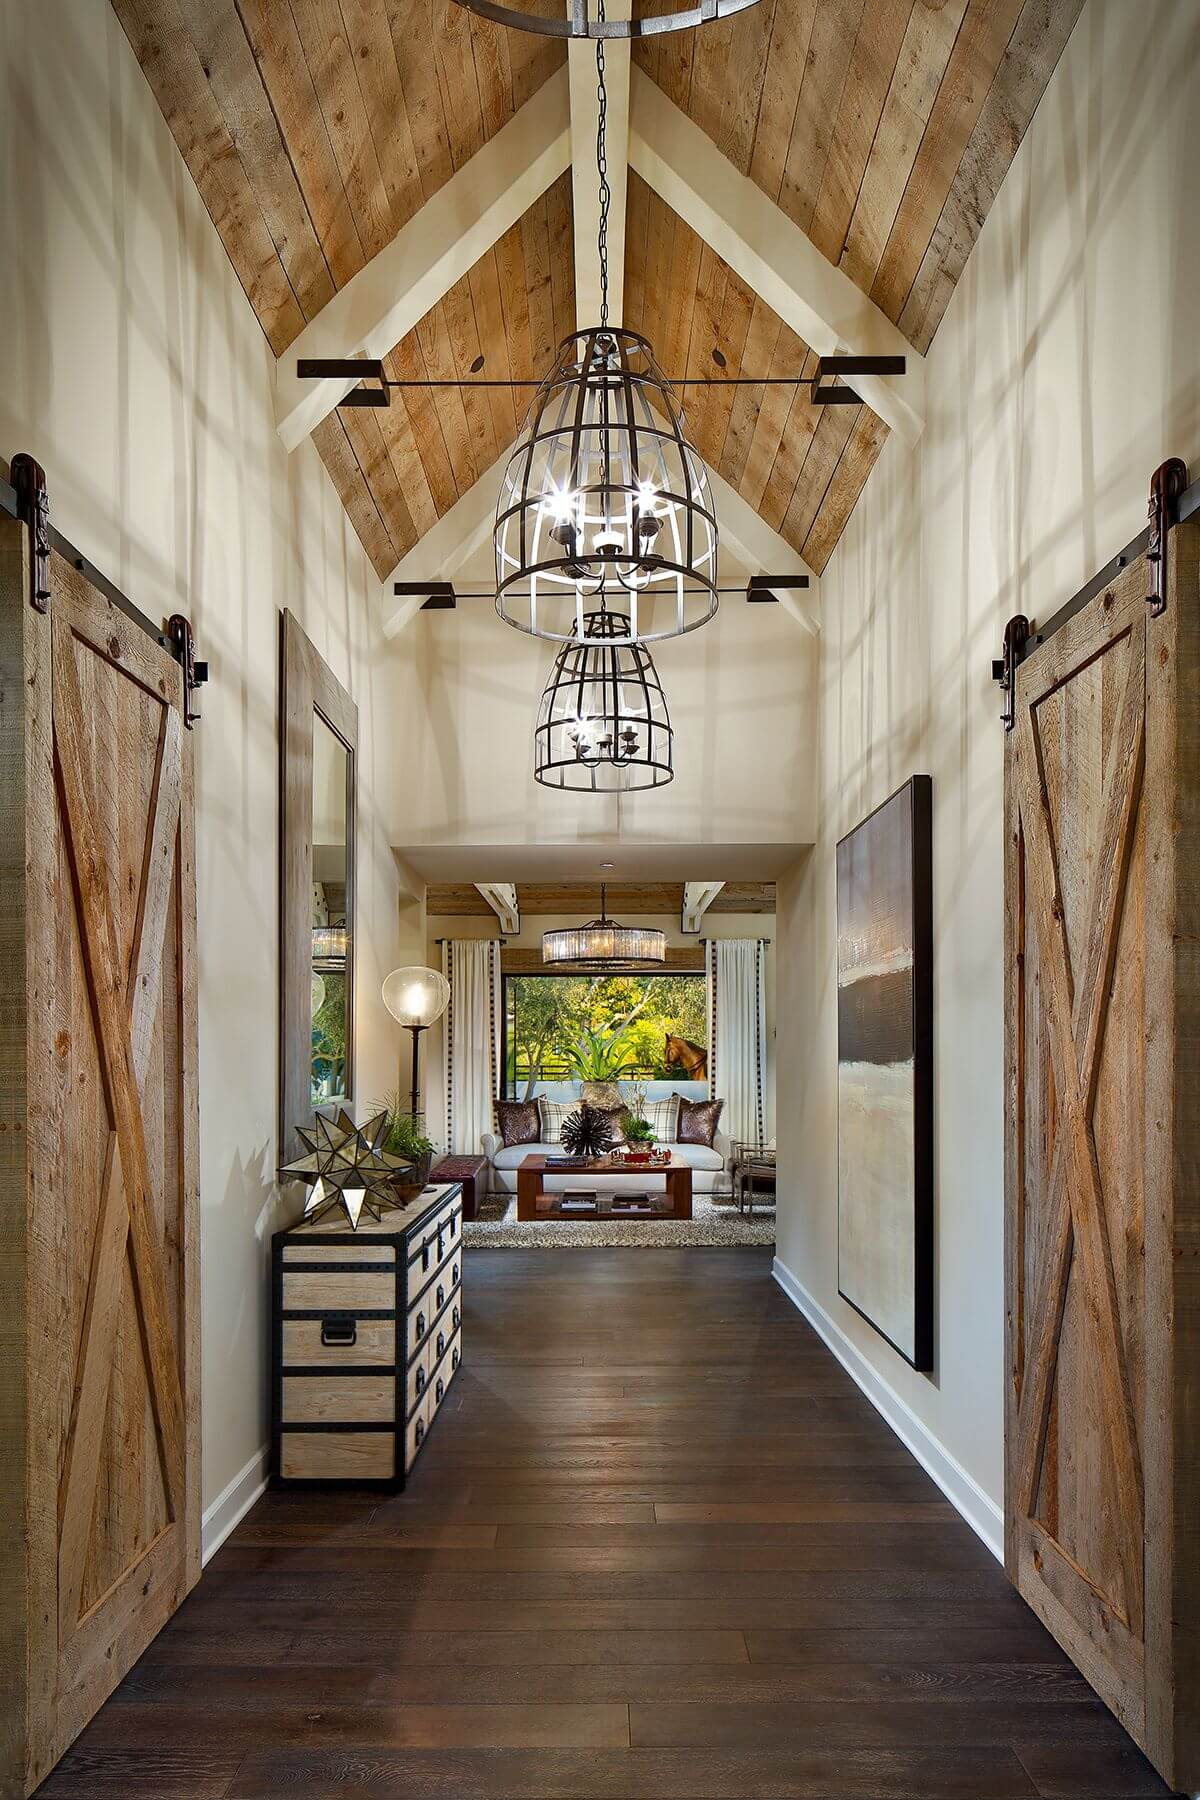 How to Mix Wood and Metal Décor